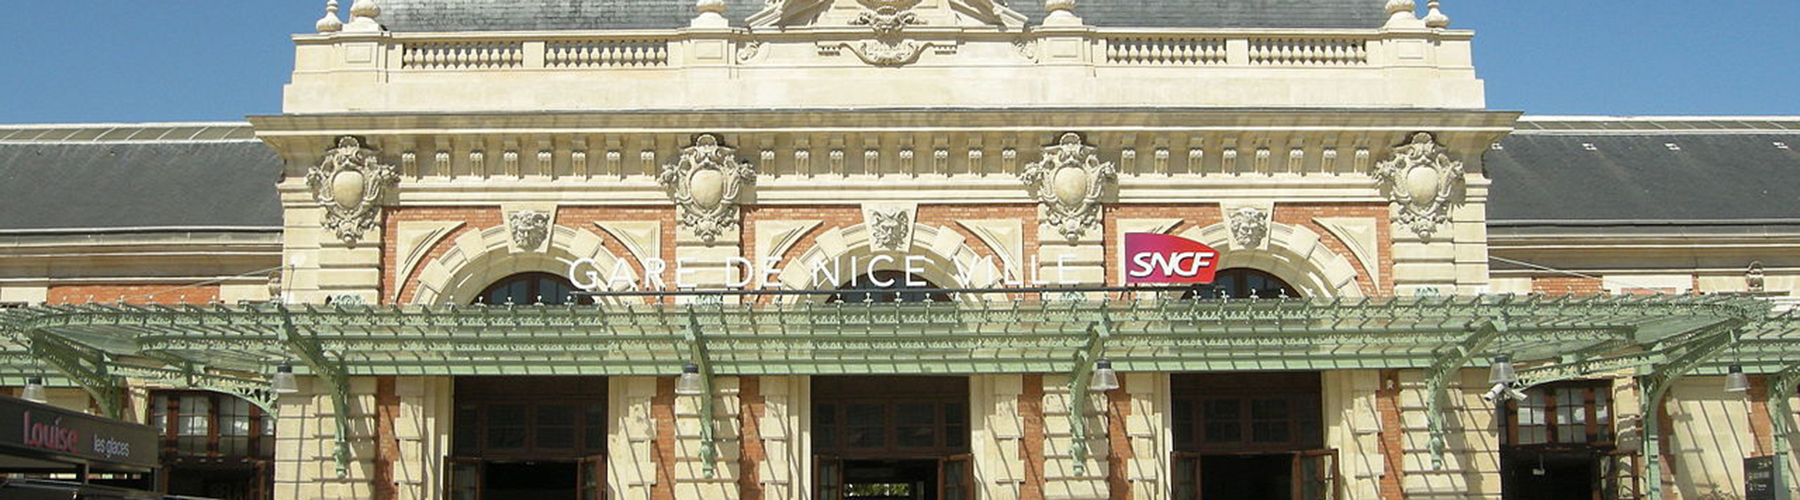 Nice – Cheap Rooms close to Gare de Nice railway station. Maps of Nice, Photos and Reviews for each cheap room in Nice.